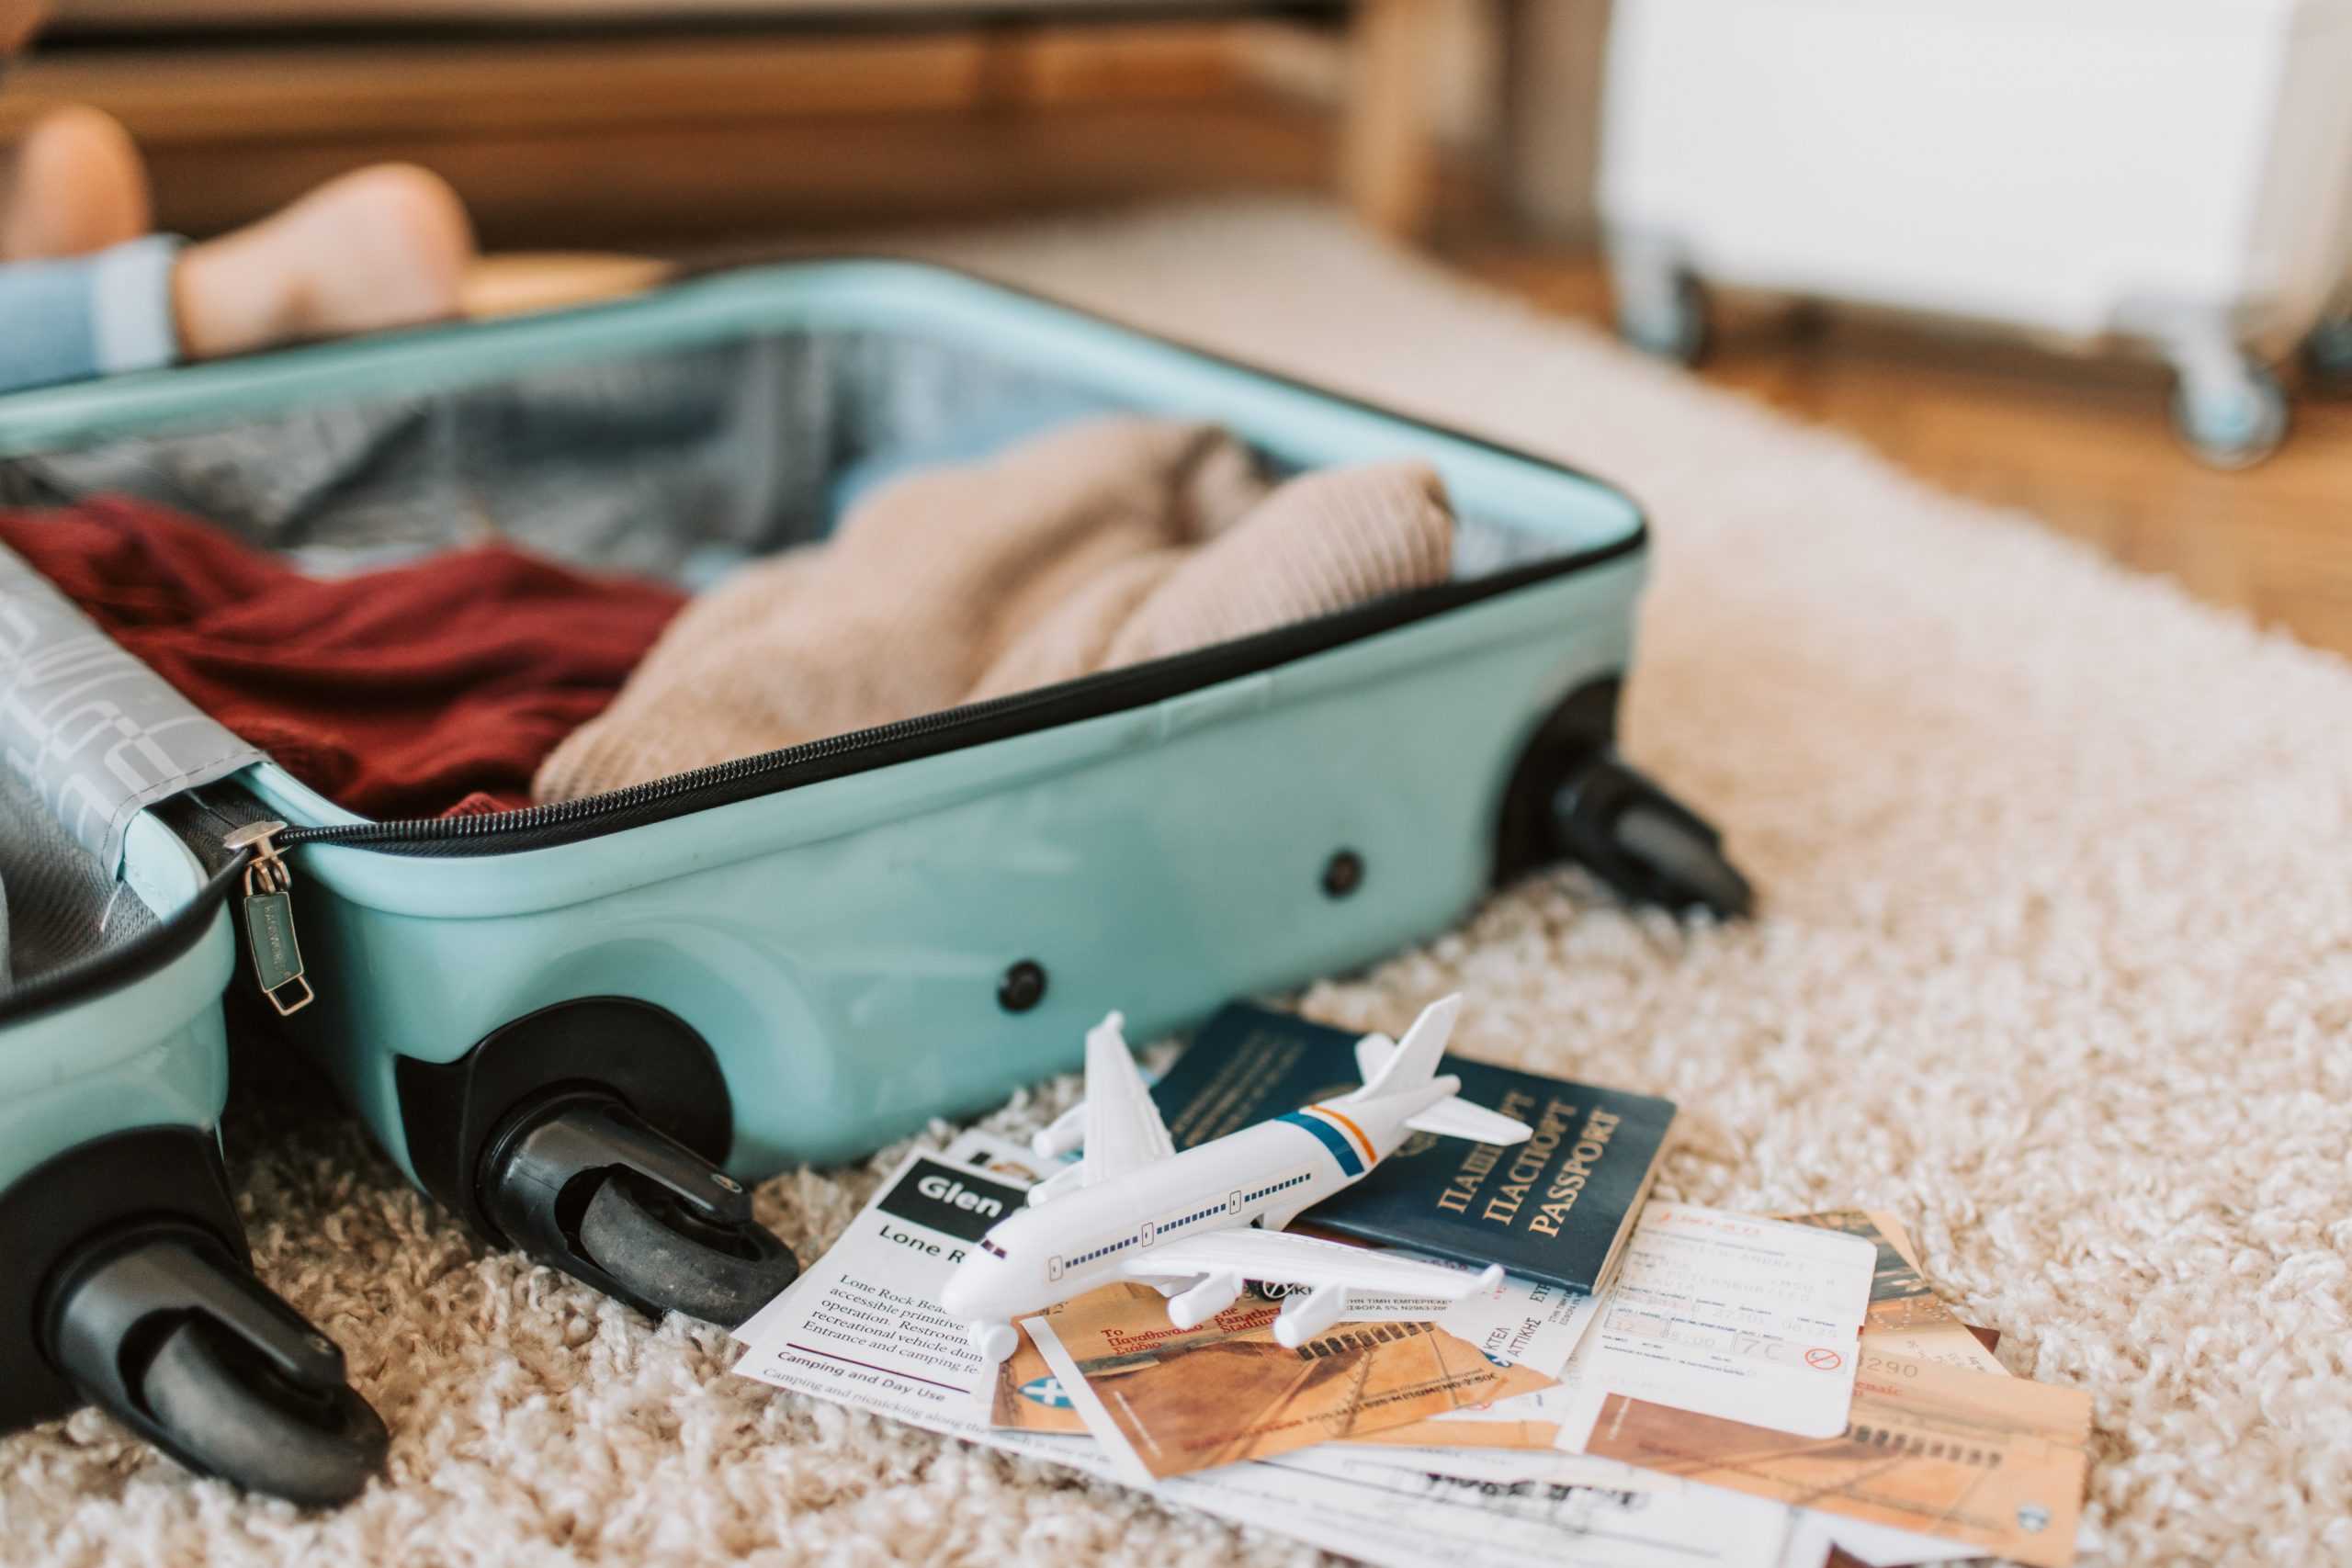 7 Travel Must-Haves From Amazon Prime